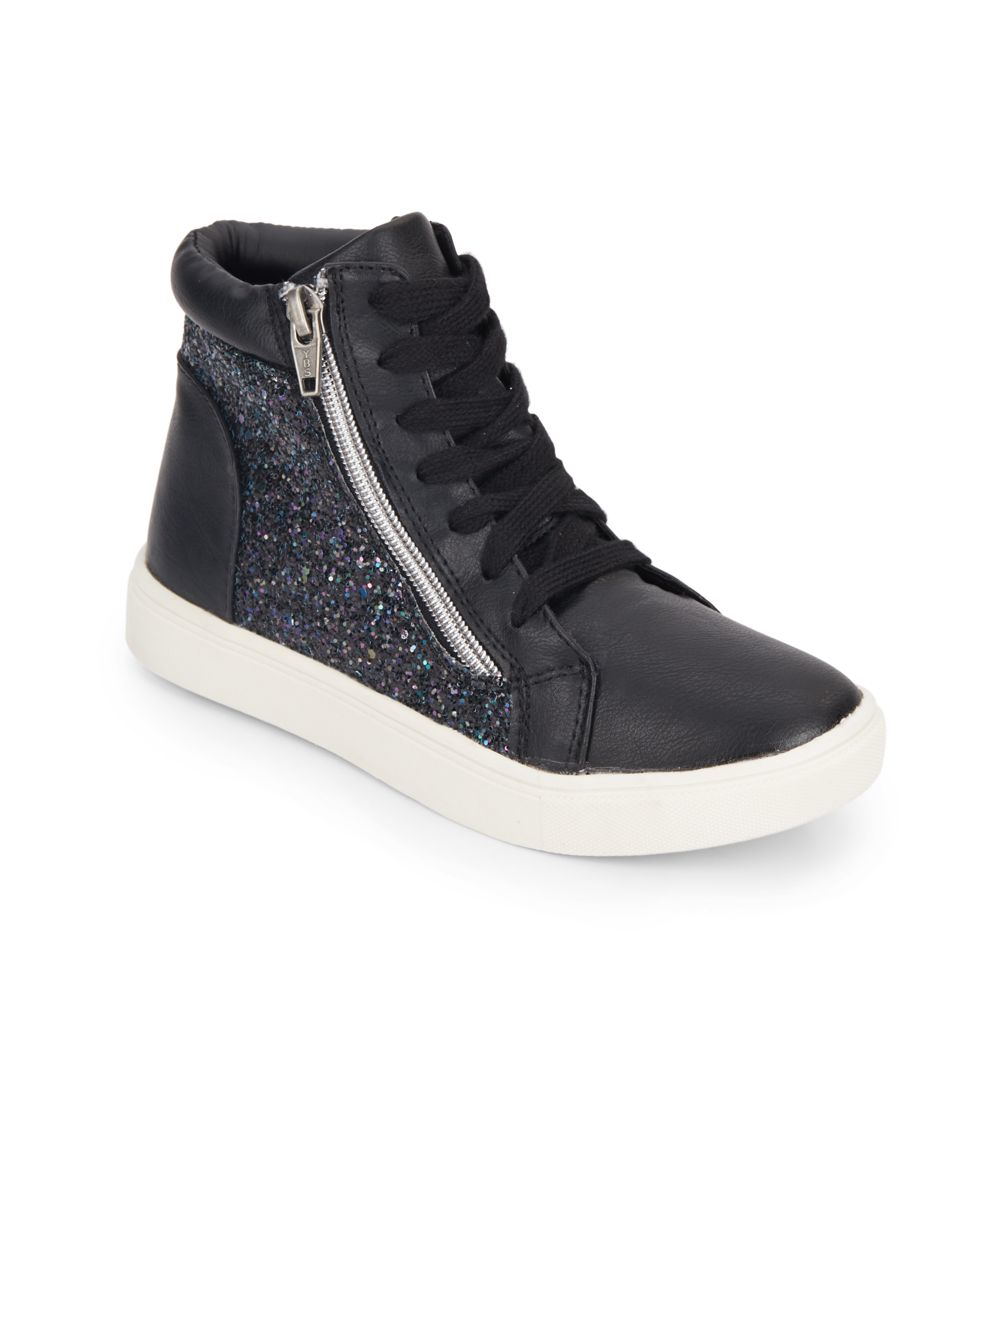 086f754ac09 Lyst - Steve Madden Girl s Glitter Faux Leather High Top Sneakers in ...